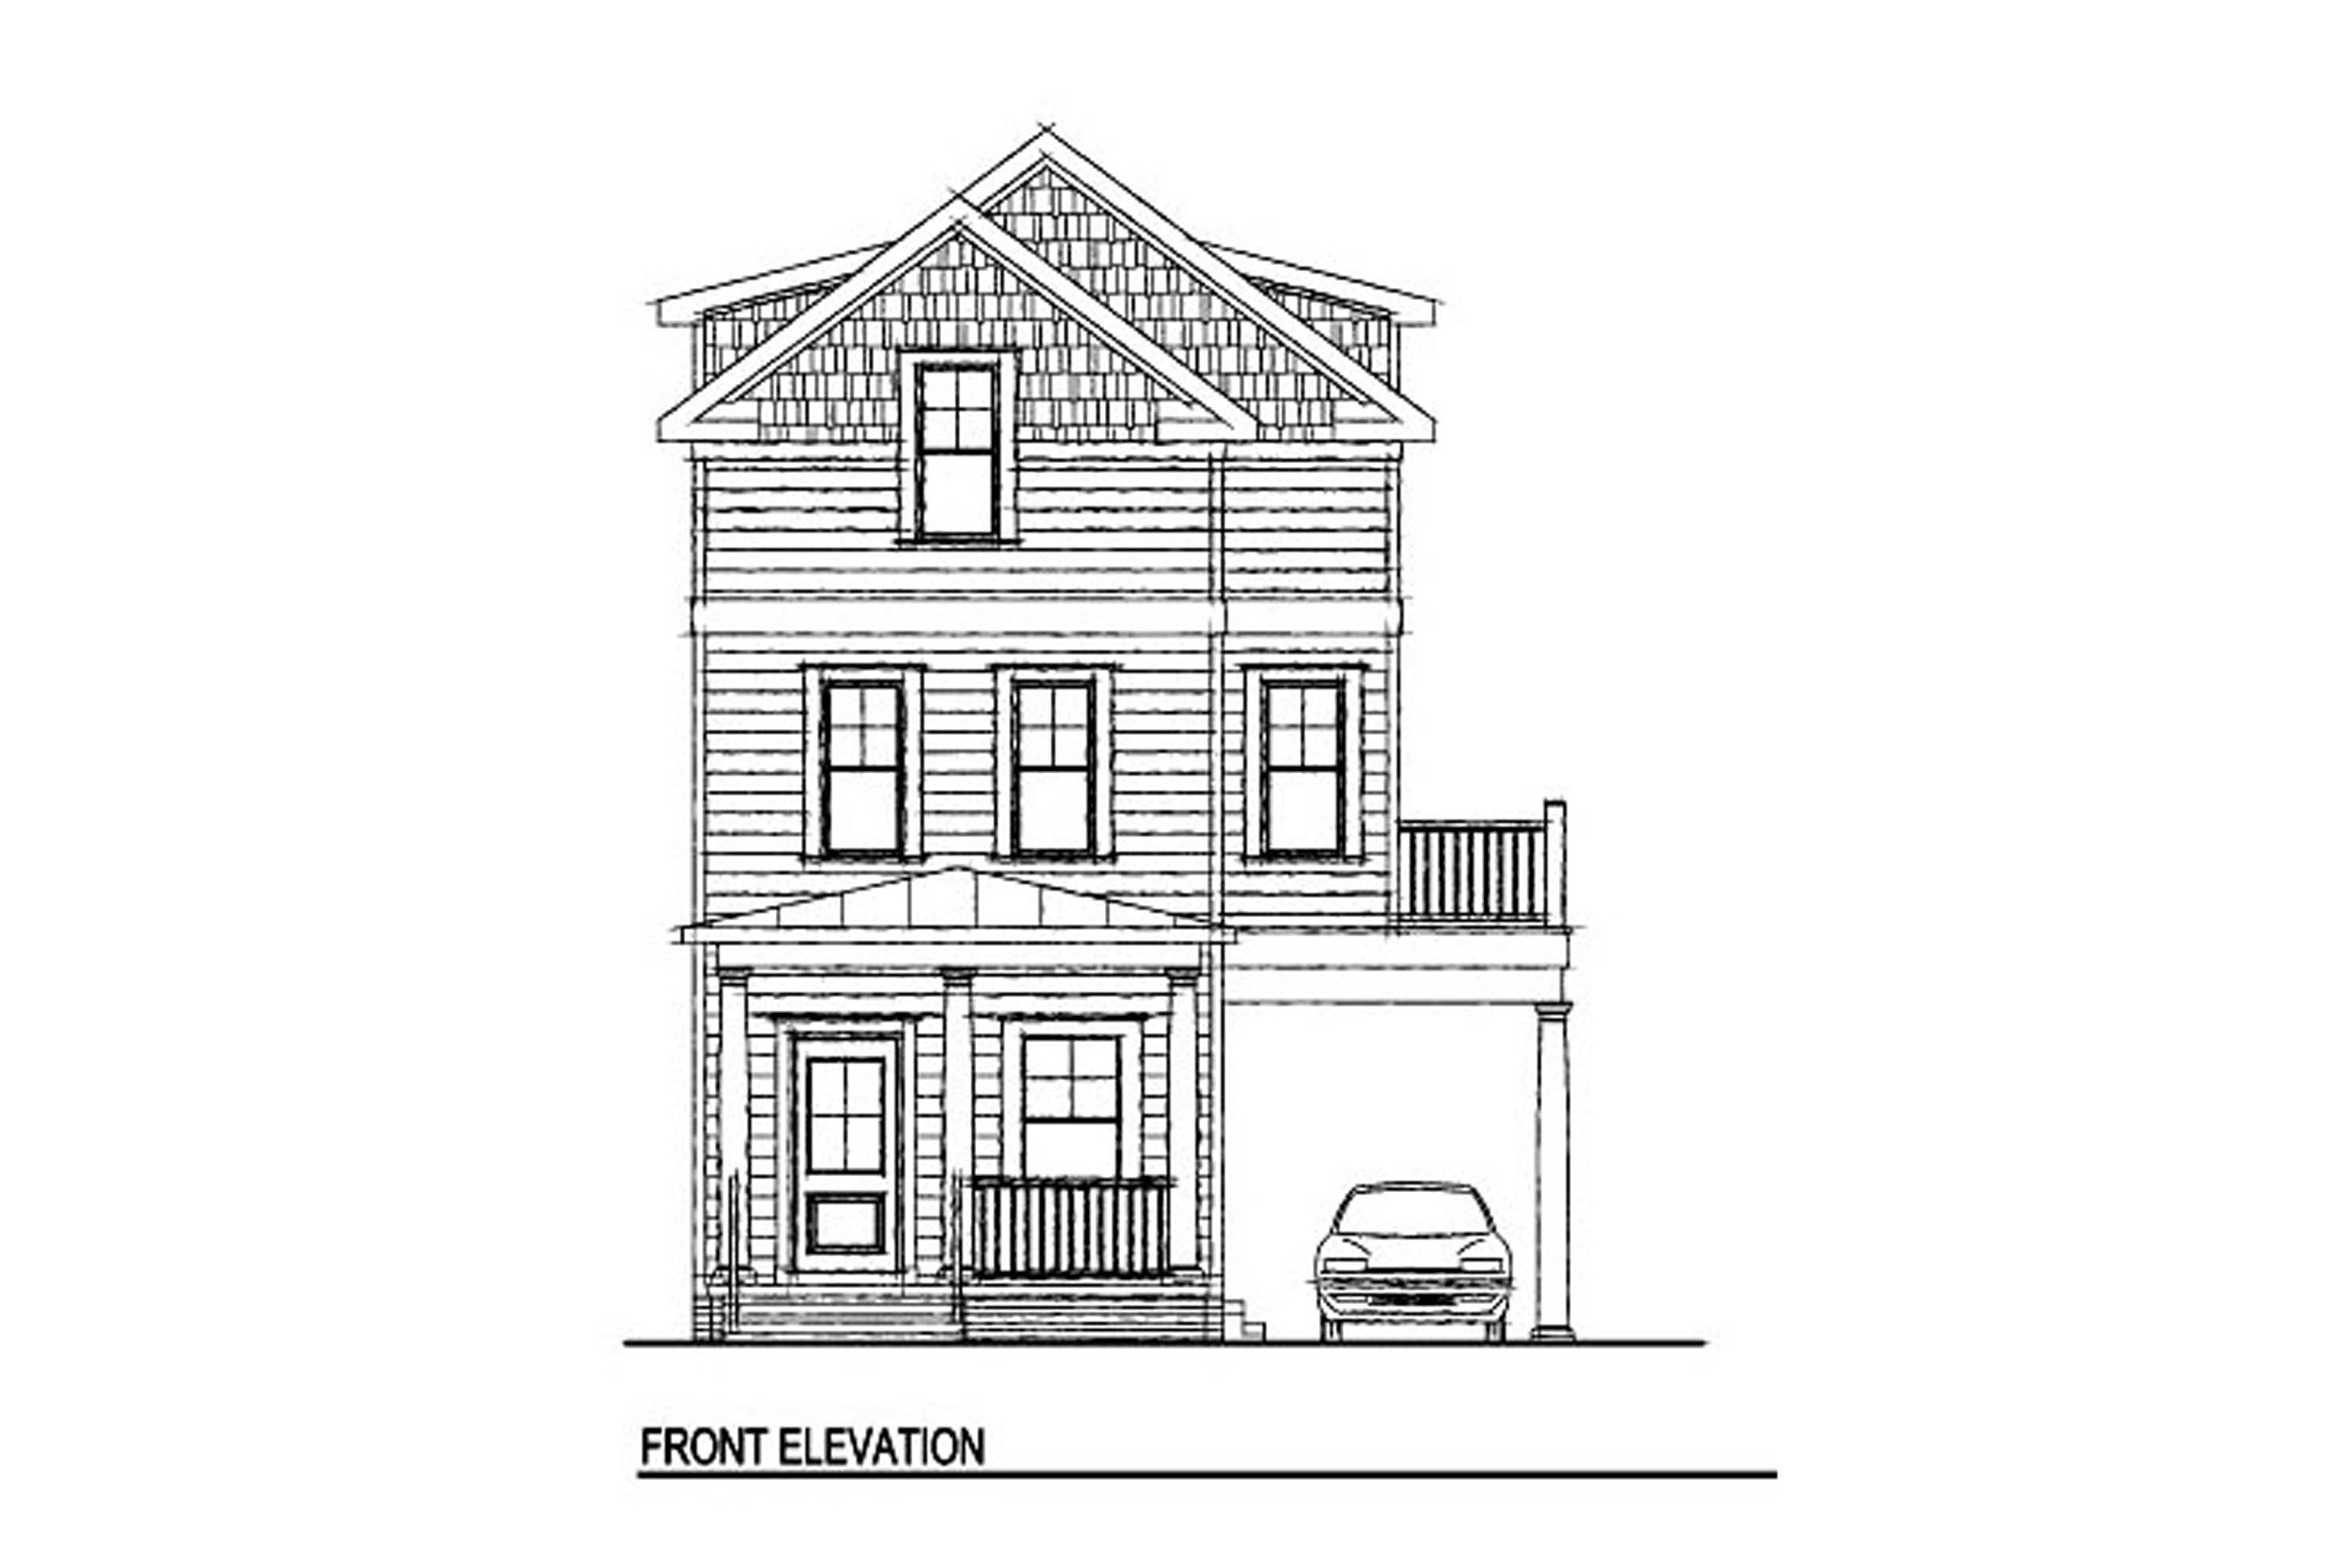 House Plan 230 - Shore Thing